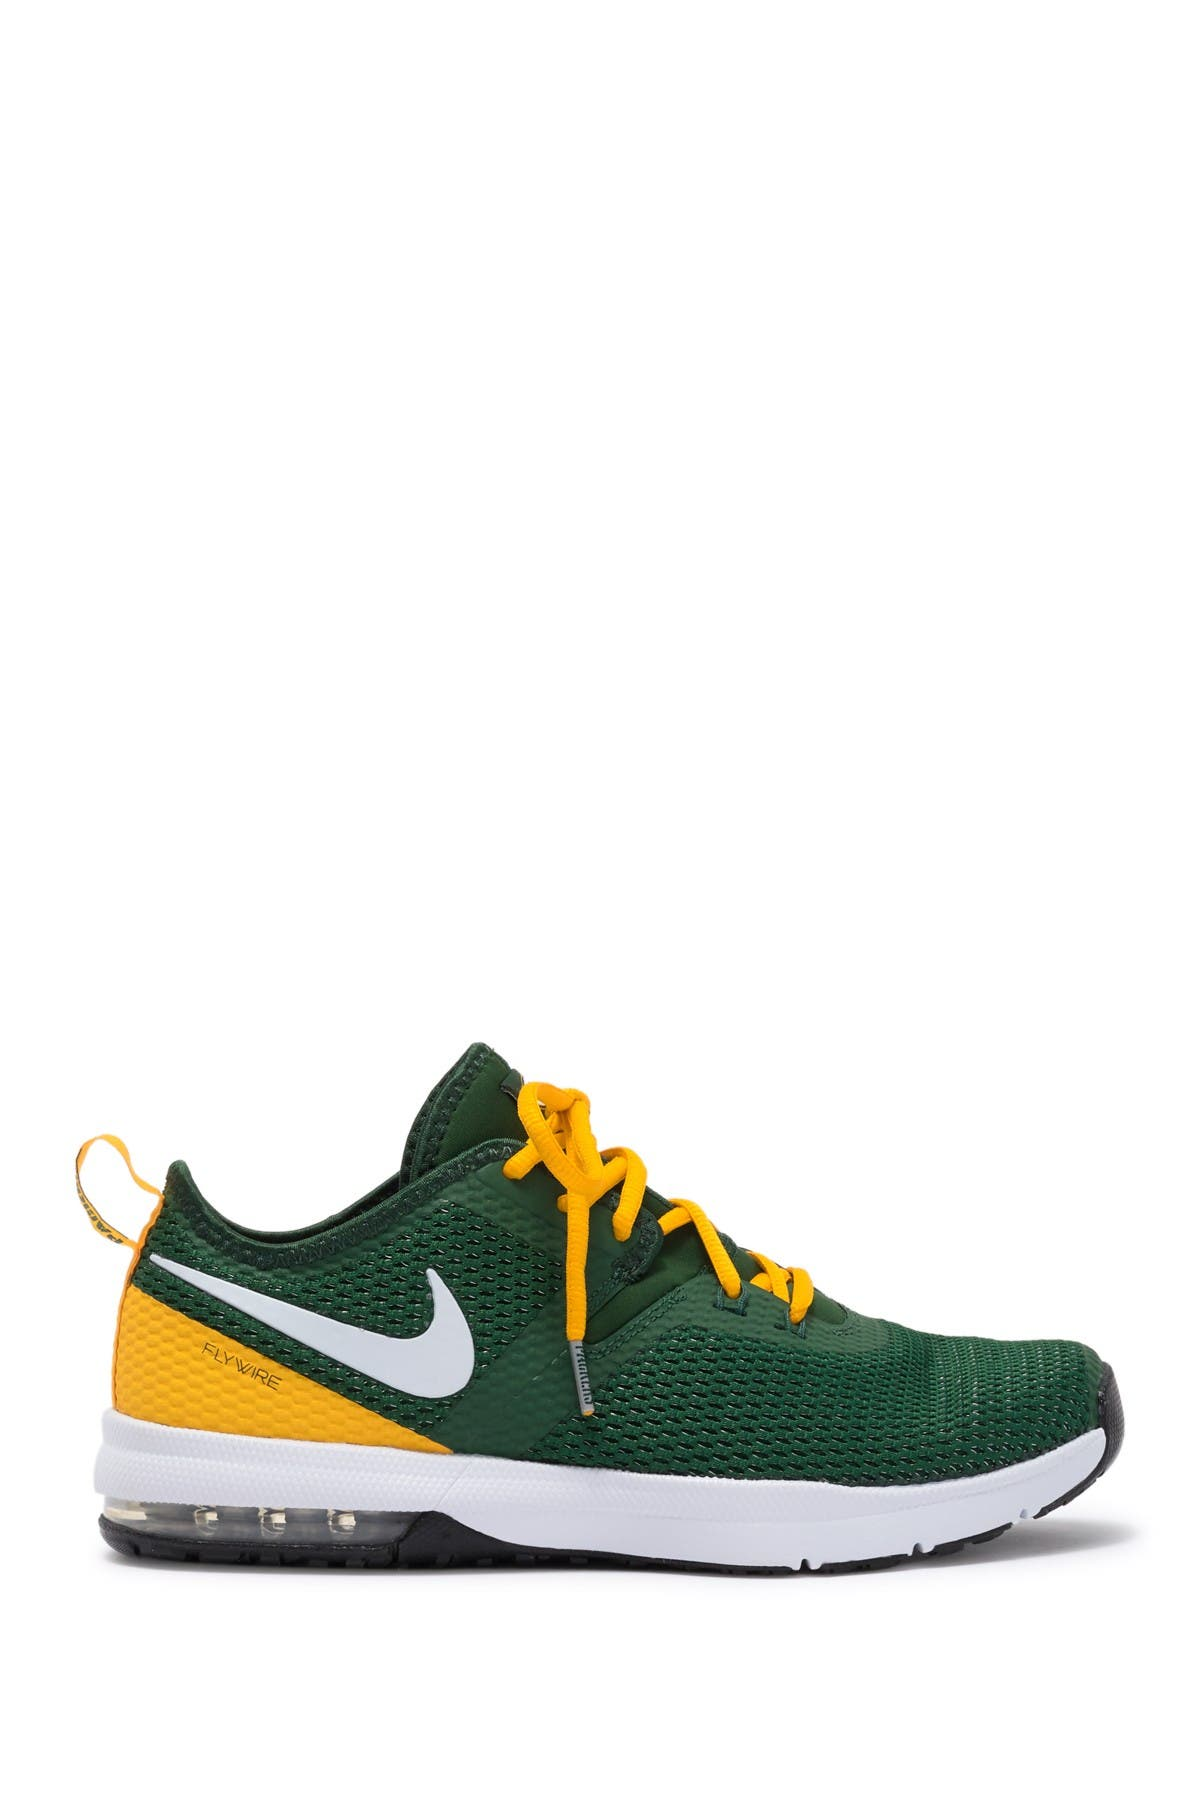 Air Max Typha 2 NFL Green Bay Packers